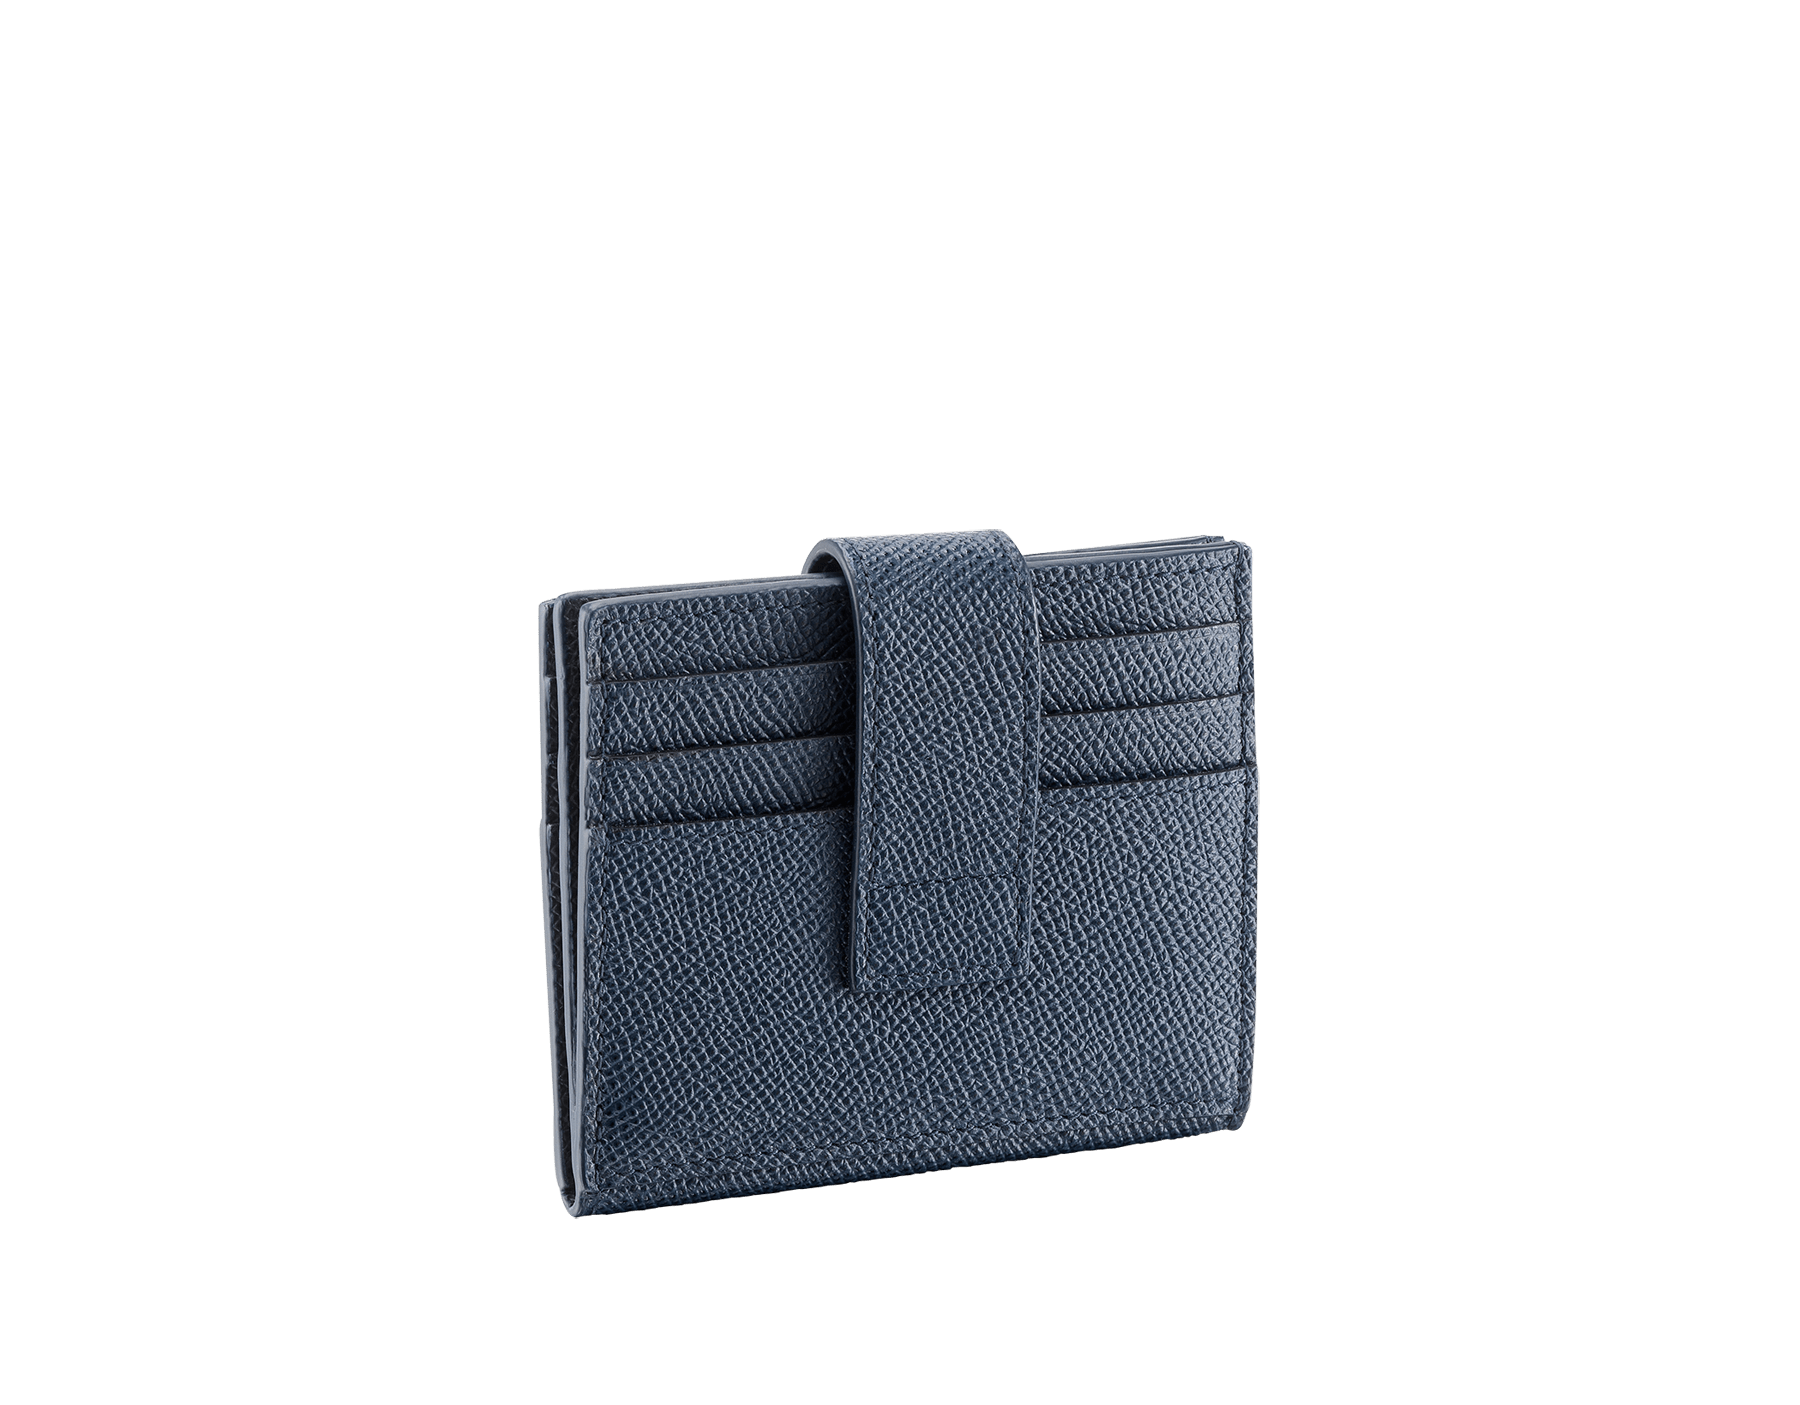 BVLGARI BVLGARI folded credit card holder in denim sapphire and charcoal diamond grain calf leather. Iconic logo decoration in palladium-plated brass. 289235 image 3